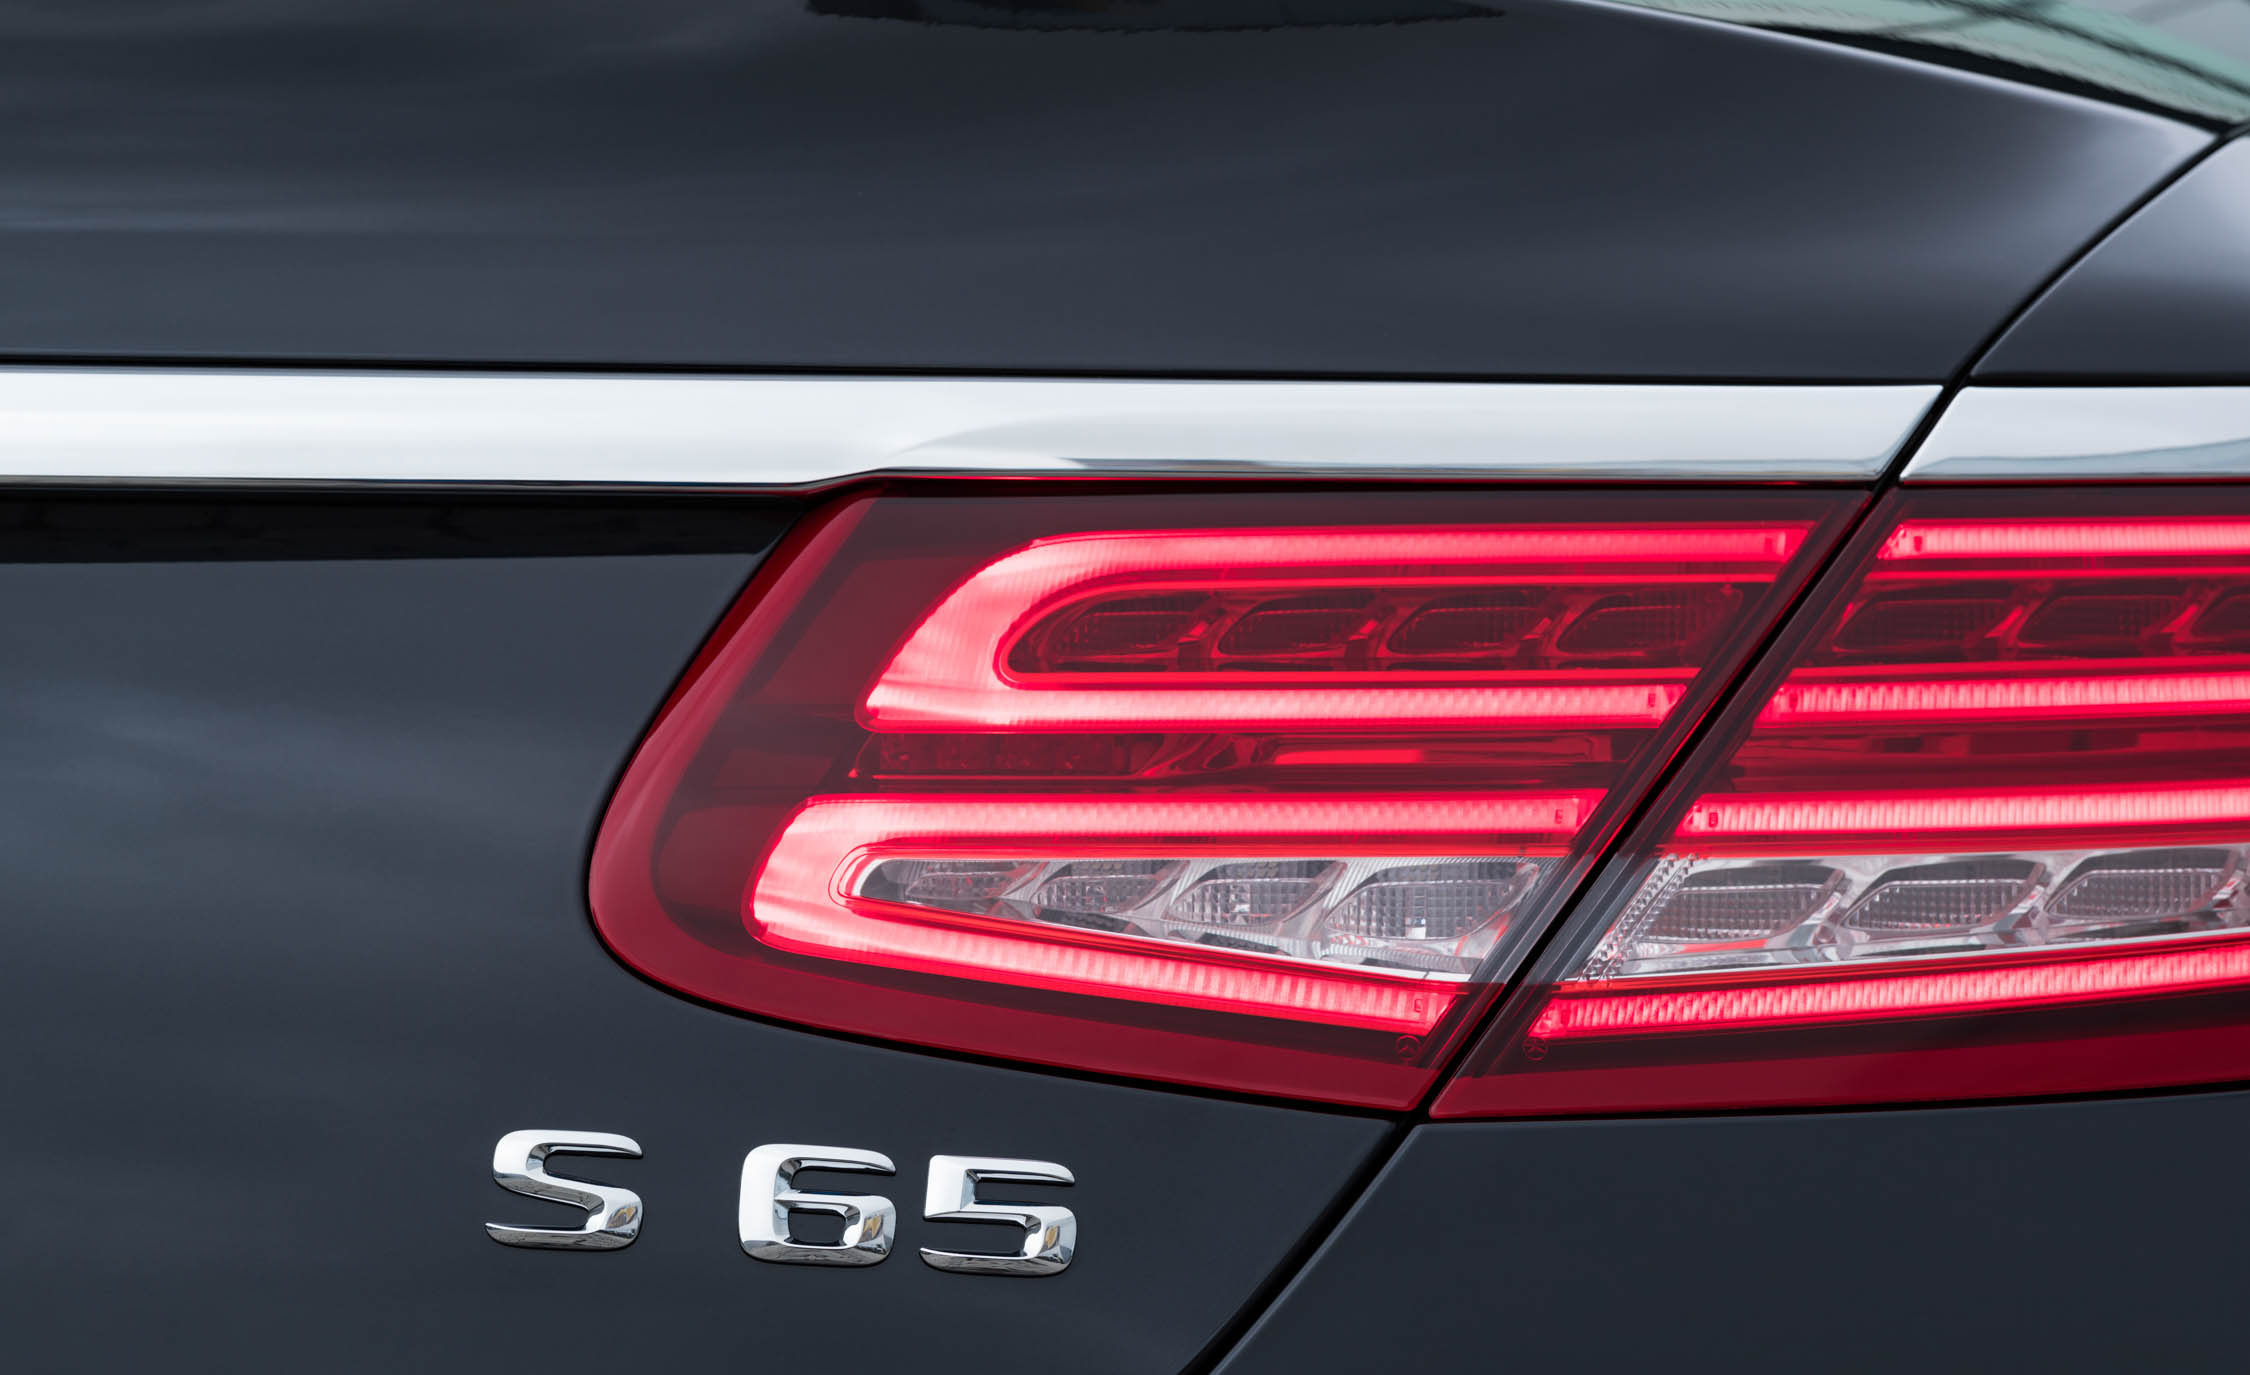 2017 Mercedes Amg S65 Cabriolet Exterior View Taillight (Photo 11 of 15)